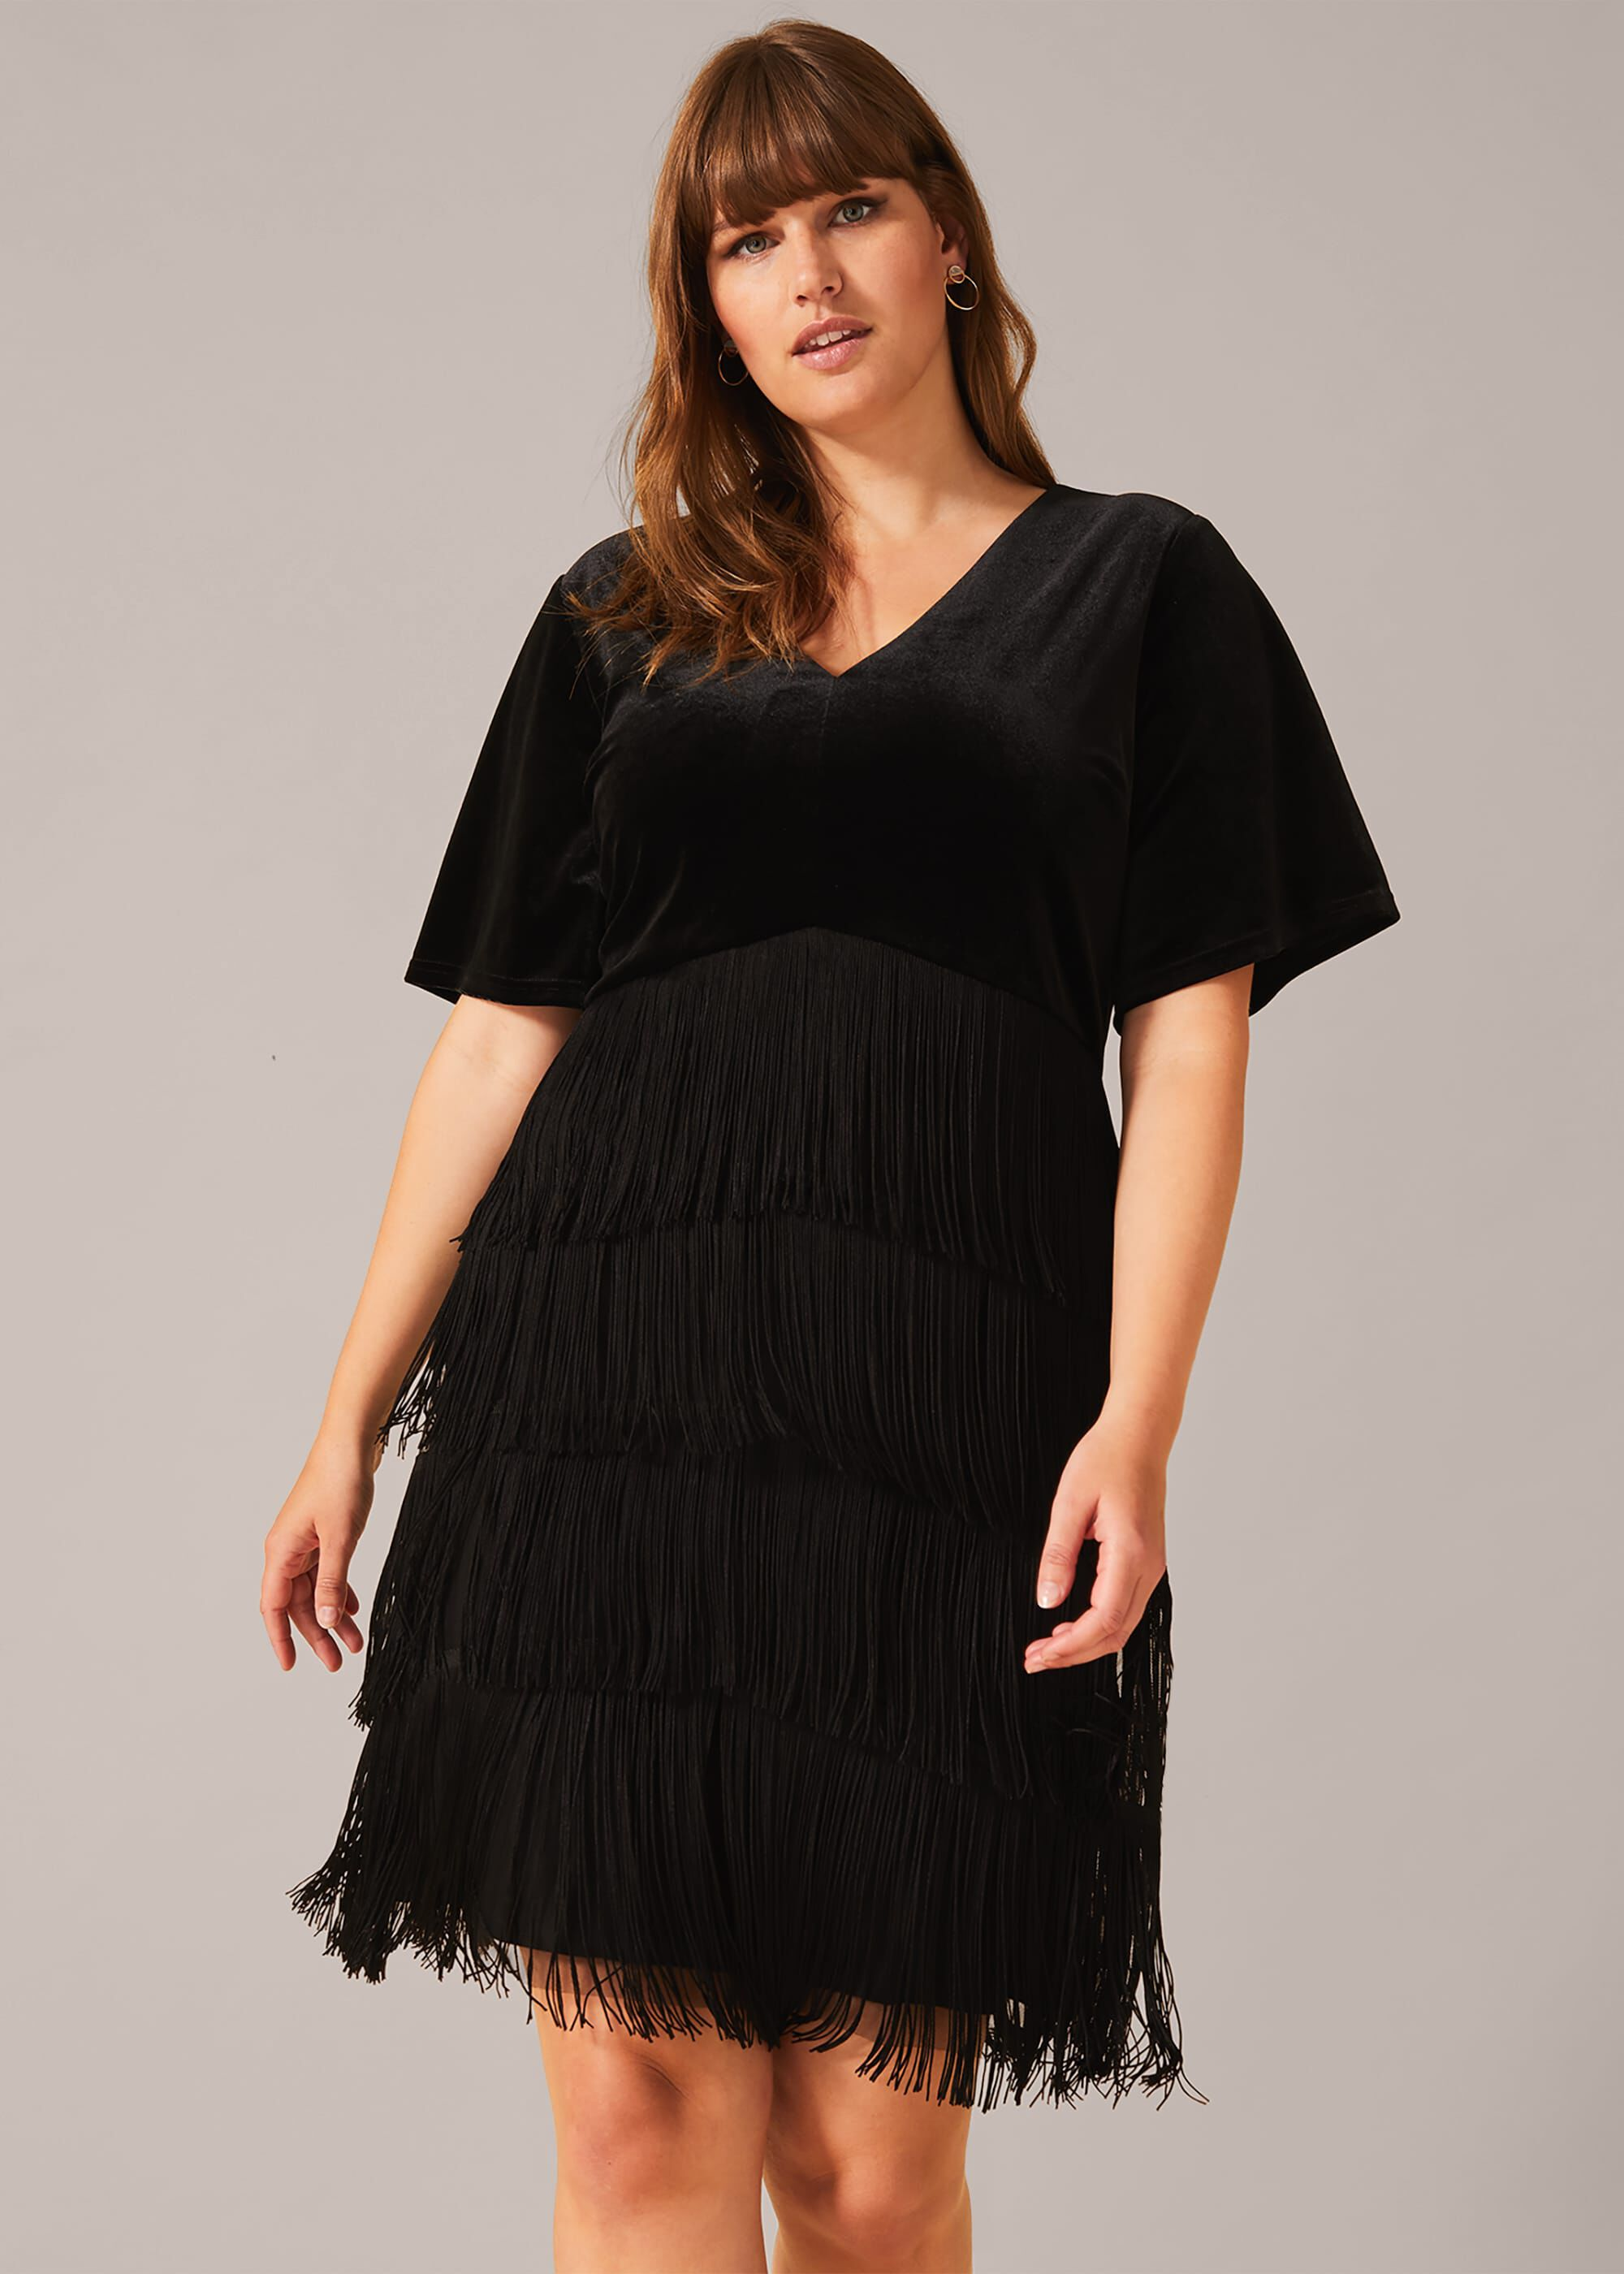 1920s Dresses UK | Flapper, Gatsby, Downton Abbey Dress Studio 8 Felicity Fringe Dress Black Cocktail Occasion Dress £105.00 AT vintagedancer.com